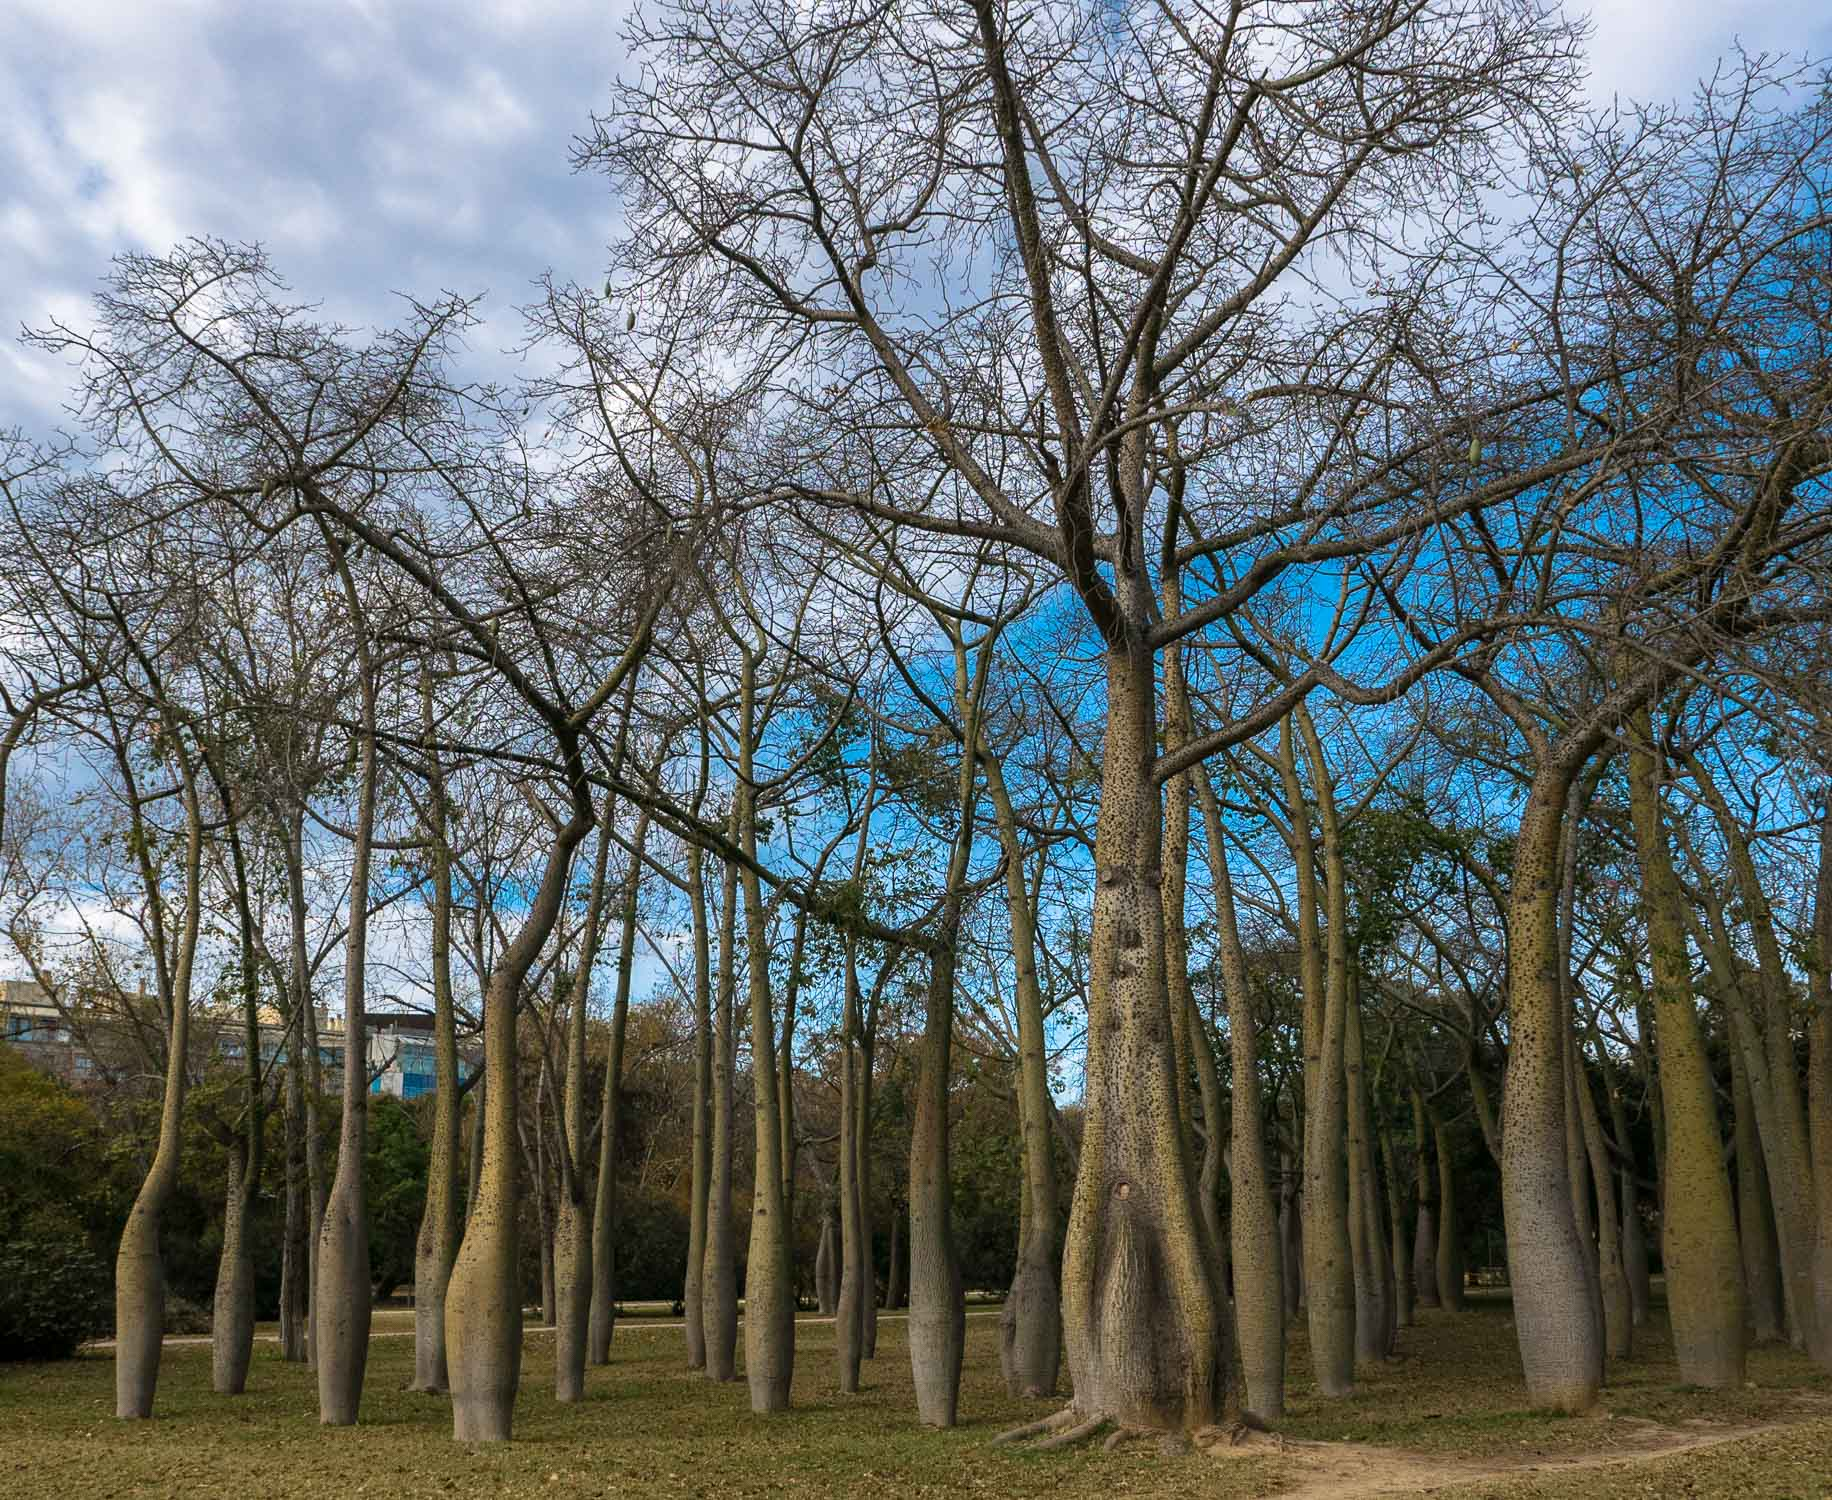 Old Boabab trees in one of the Turia gardens.